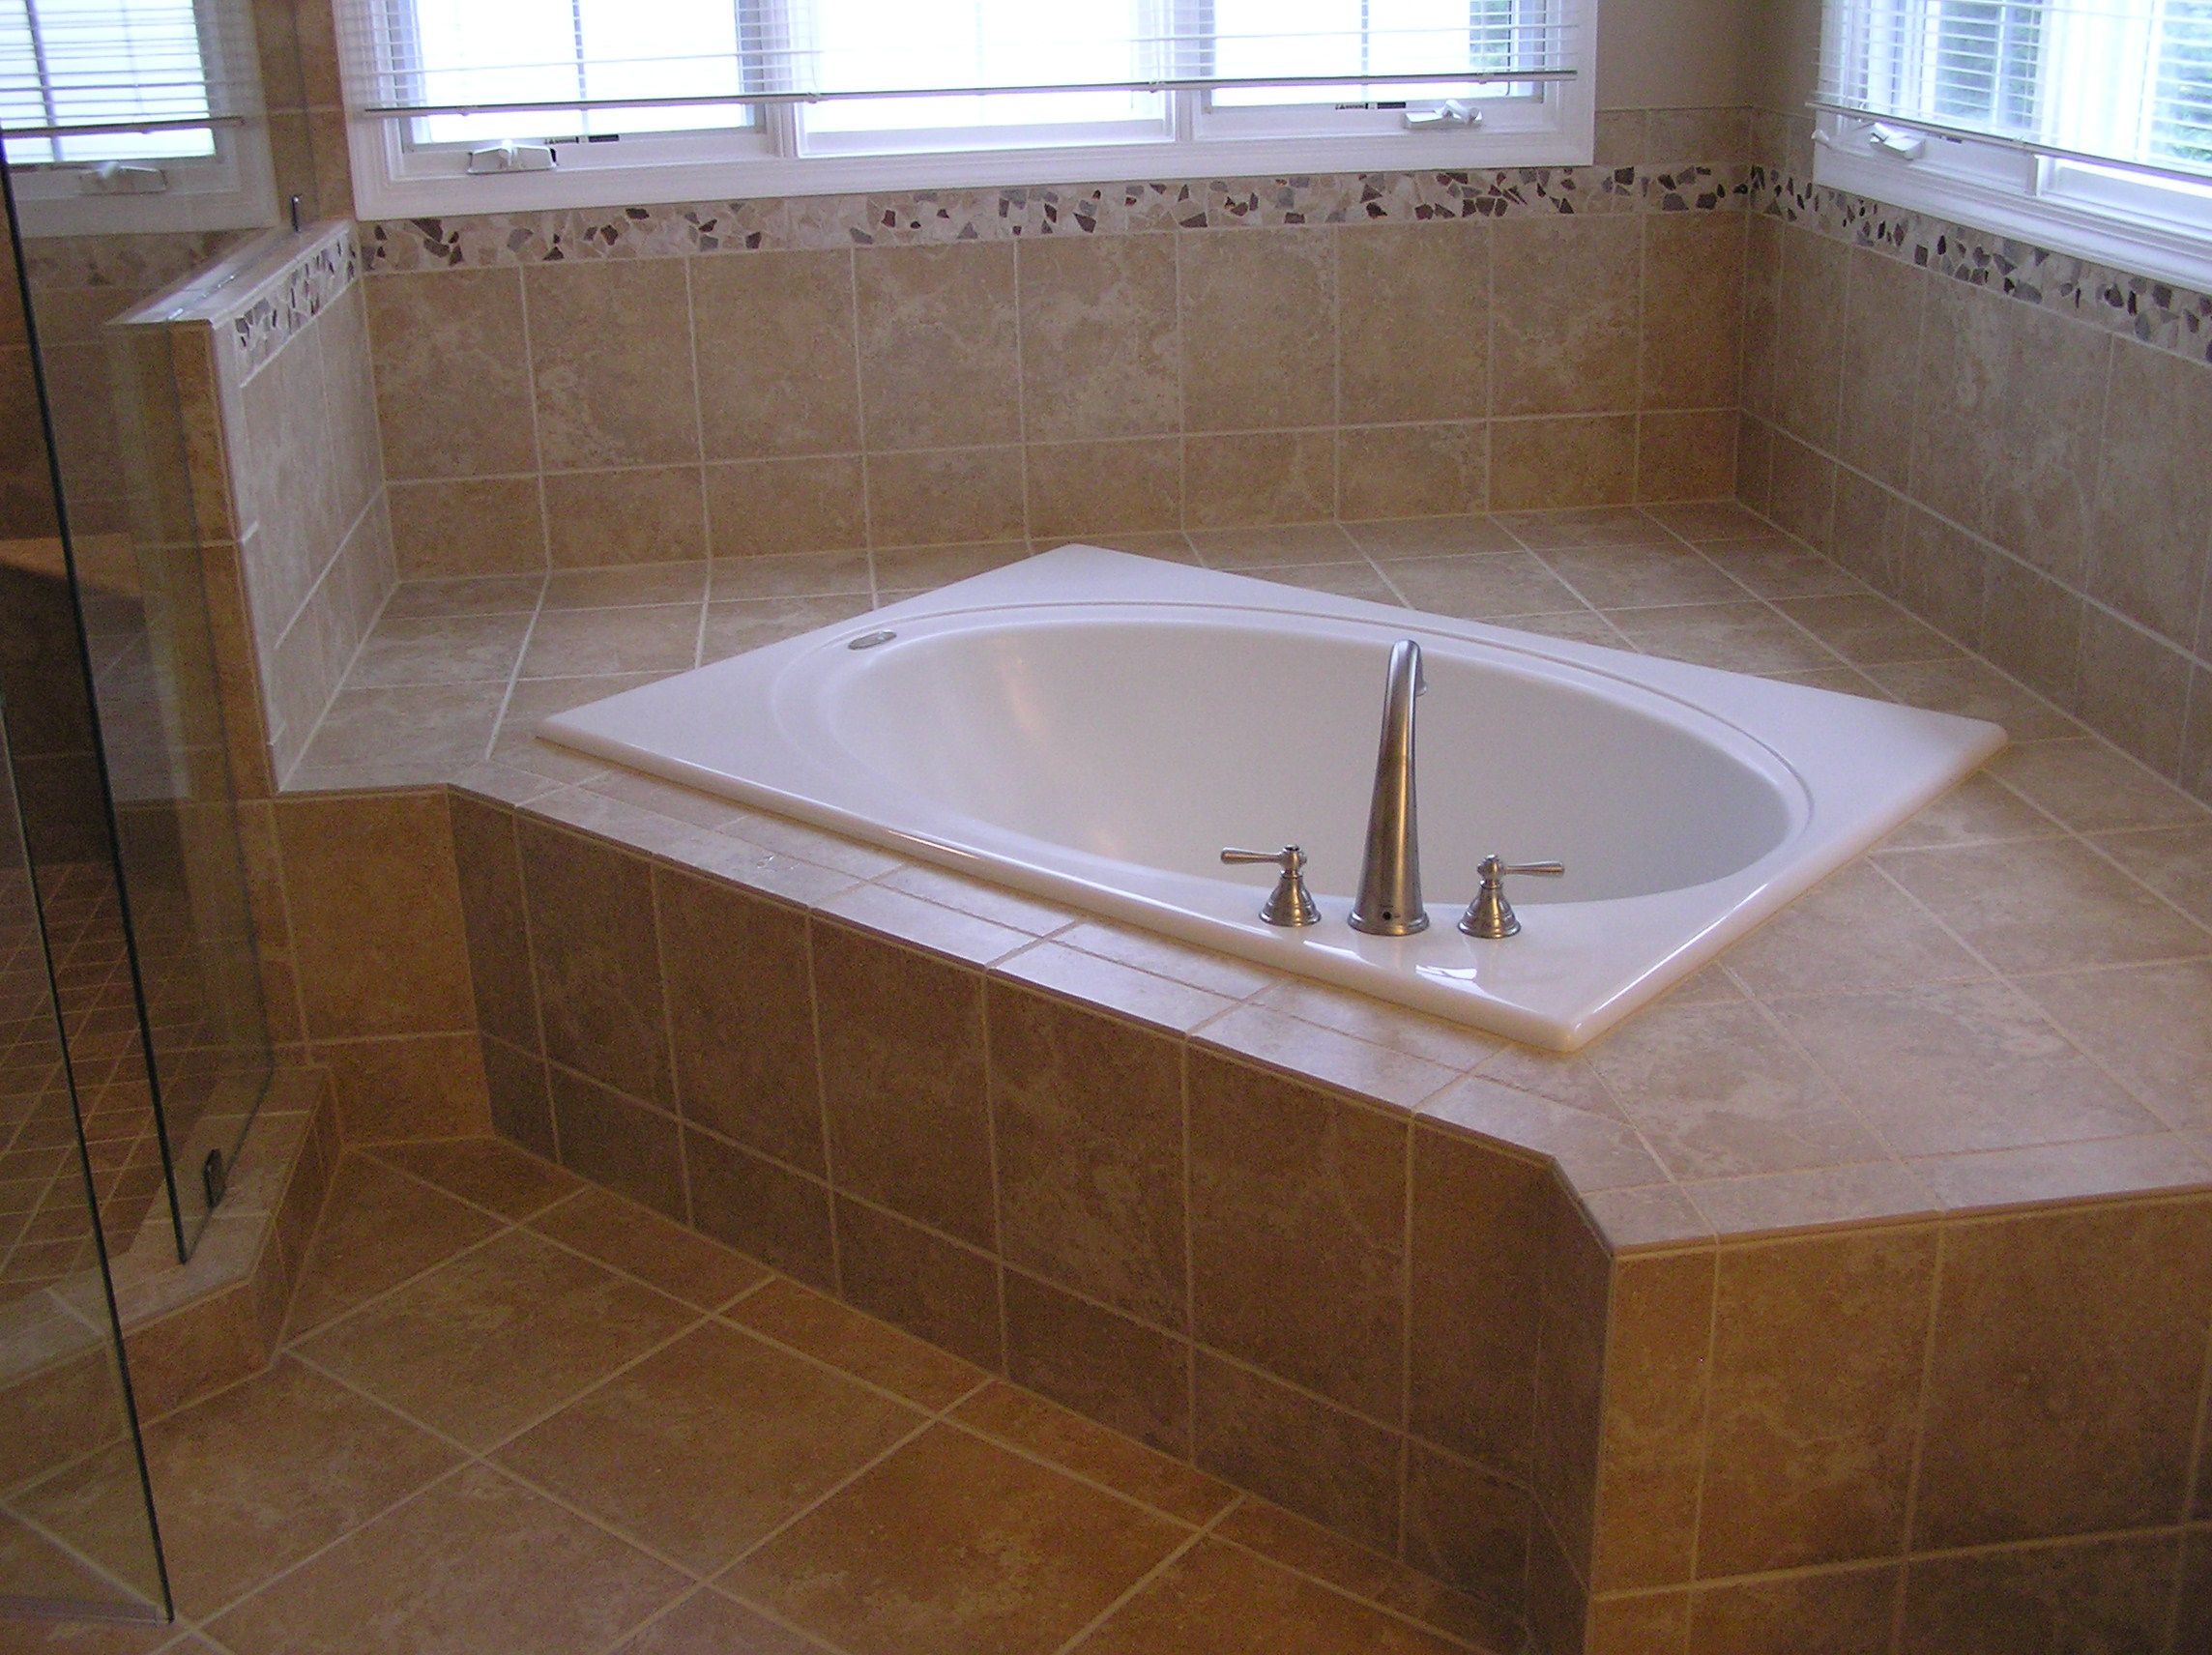 Bathroom Remodeling Ideas  Manassas Bathroom Remodel Ideas Unique Corner Soaking Tubs For Small Bathrooms Inspiration Design